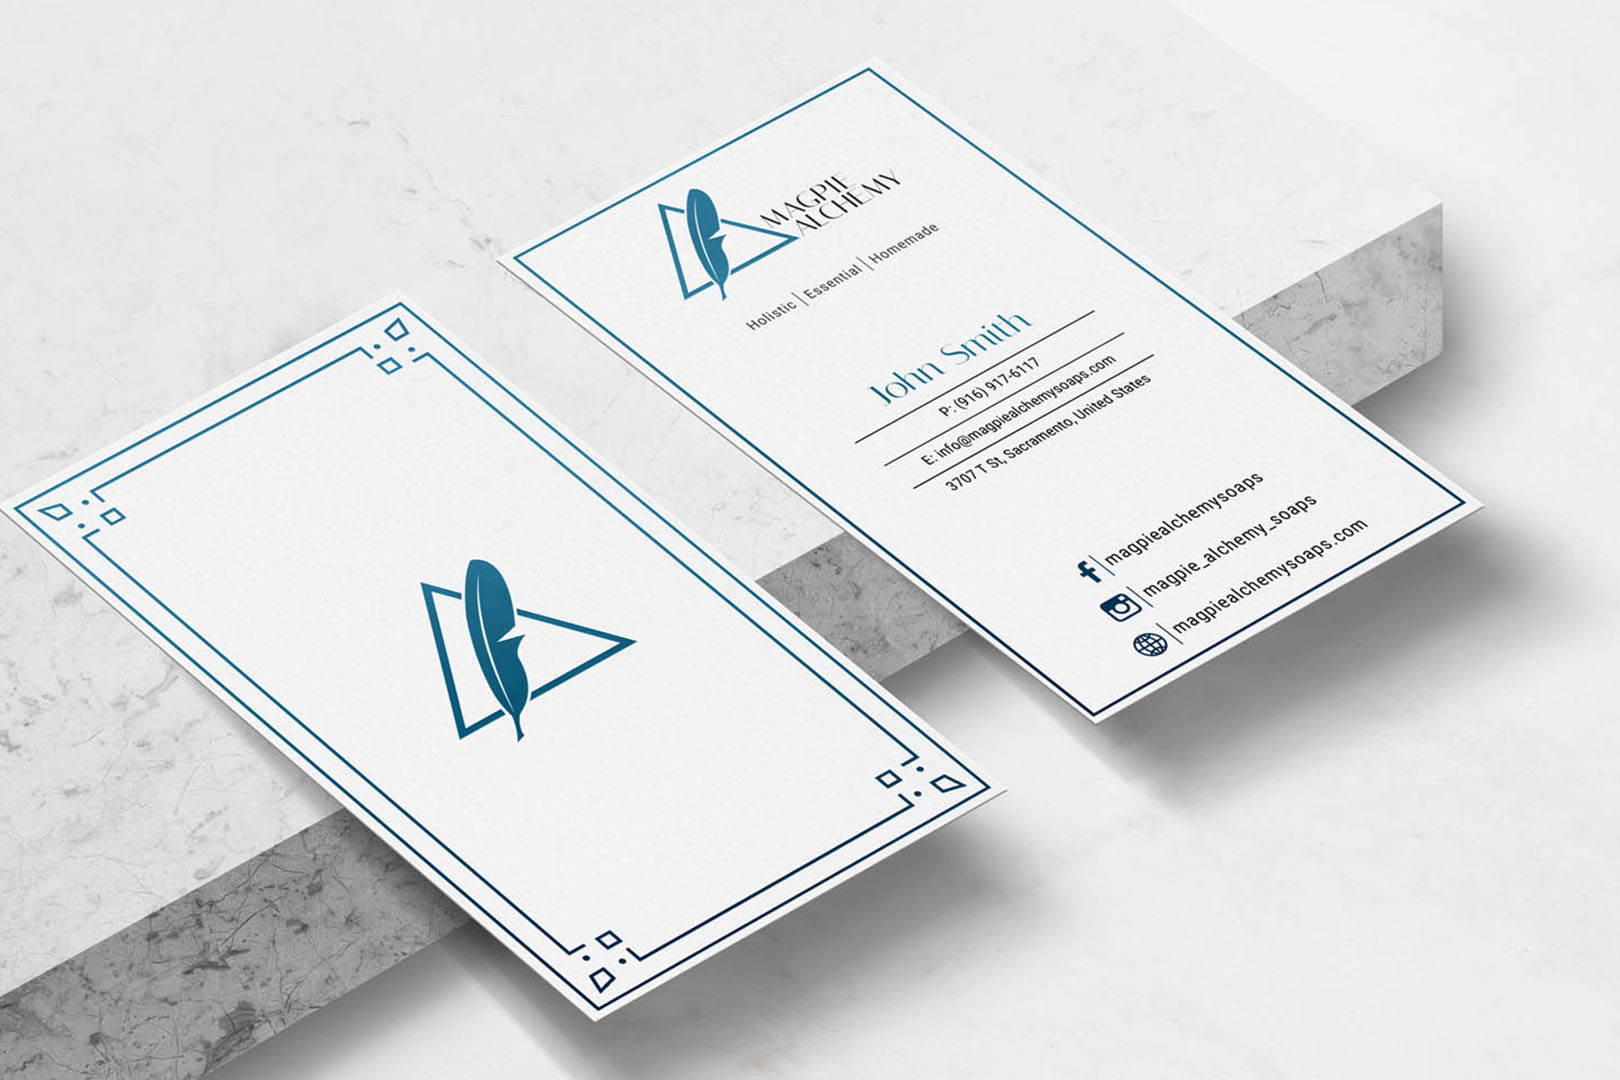 Magpie_Alchemy_Business_Card_mock__0002_Magpie_Alchemy_Business_Card_mock_v4